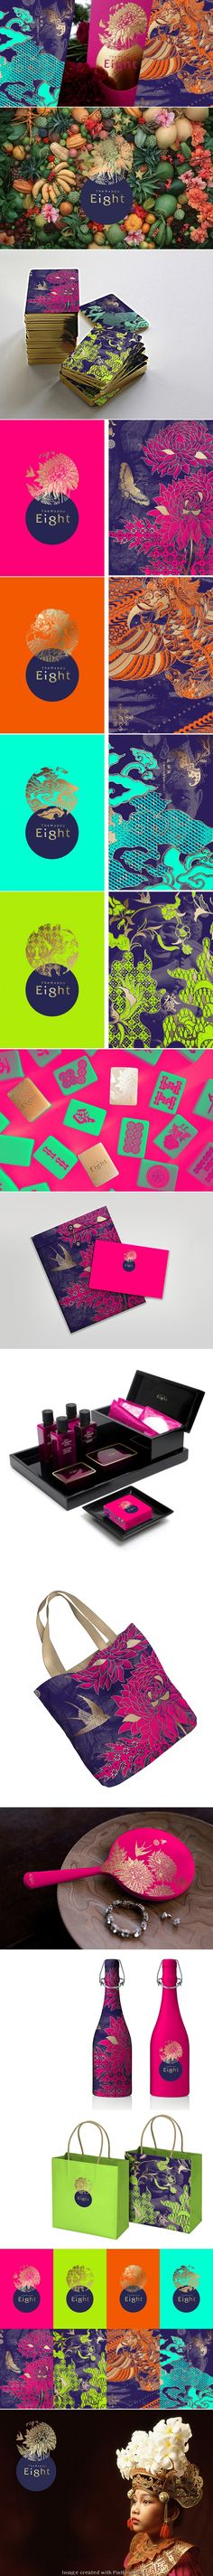 The Happy Eight Hotel Branding – Packaging Diva The Happy Eight Hotel Branding Who could resist this stellar Happy Eight Hotel curated by Packaging Diva PD created via Web Design, Logo Design, Poster Design, Graphic Design Branding, Identity Design, Typography Design, Print Design, Nail Design, Brand Identity